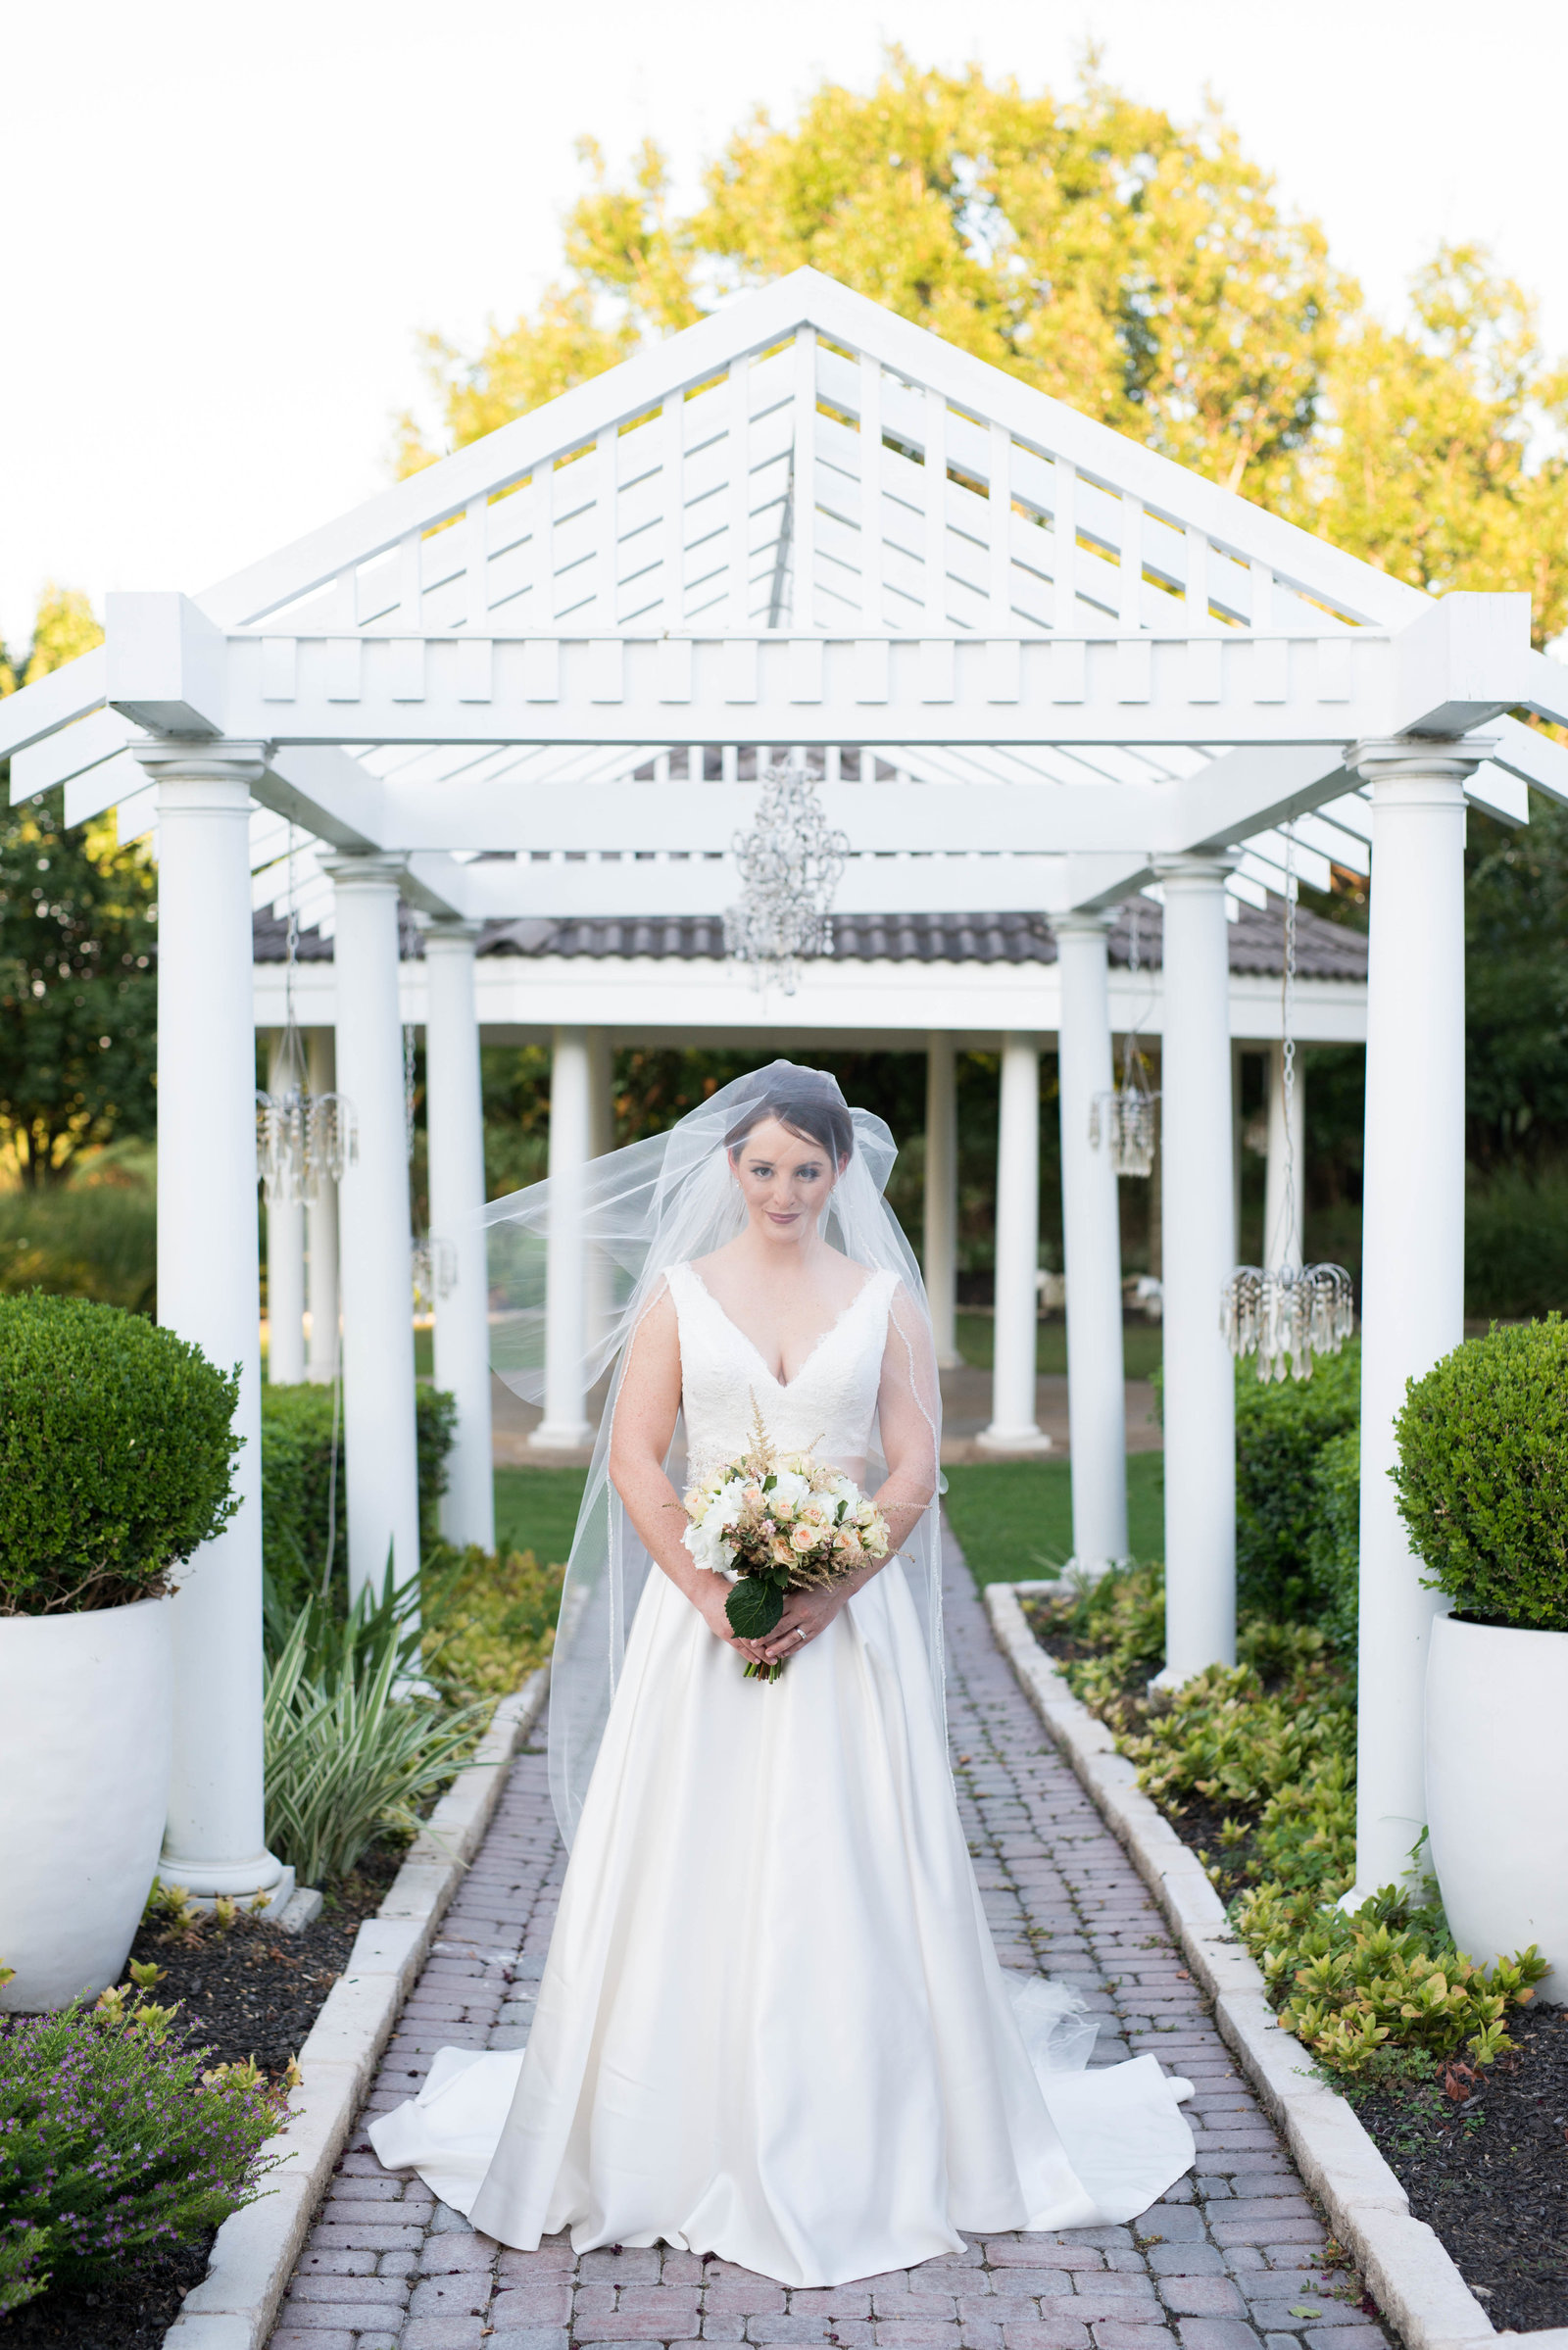 Bride stands under walkway of the Plantation House in Pflugerville with wedding veil draped overhead